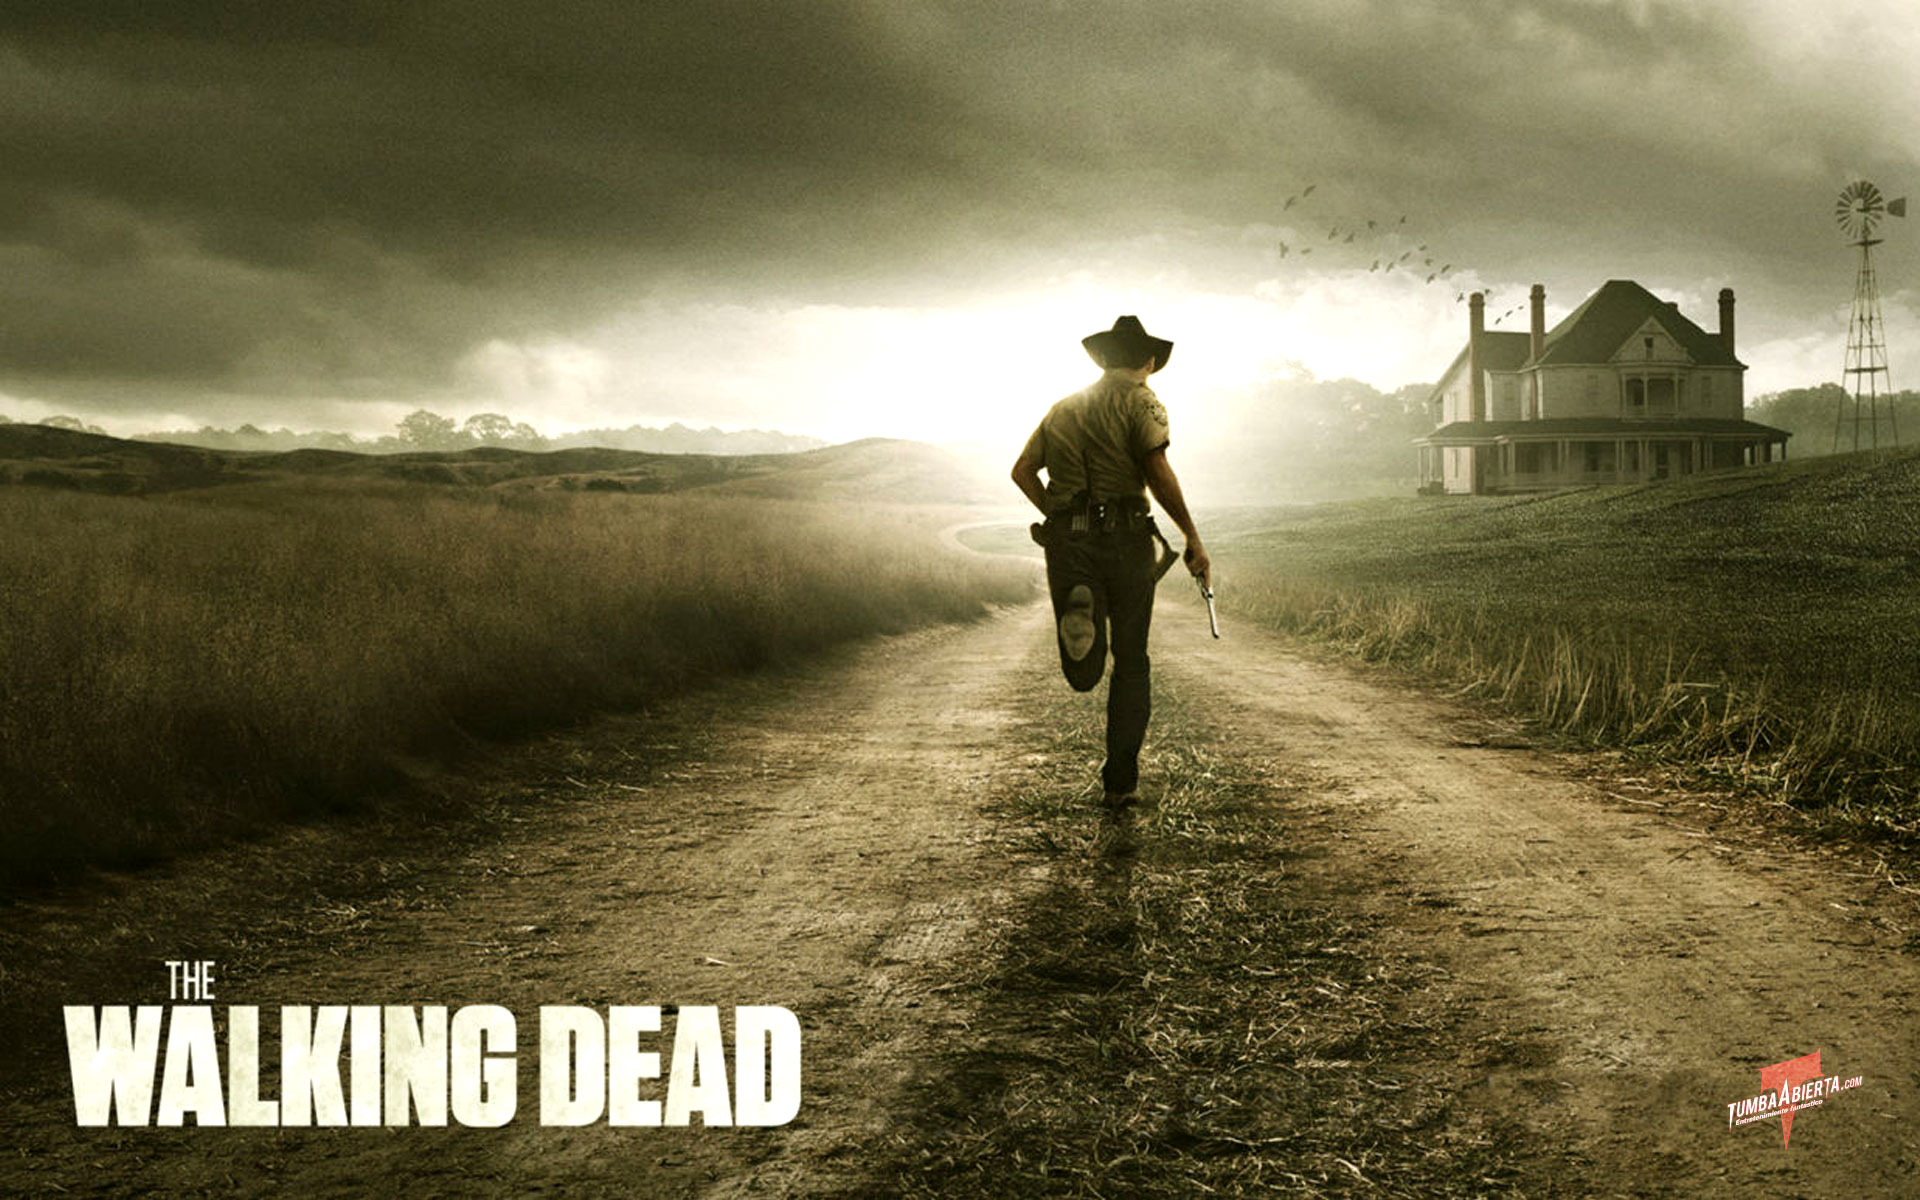 The Walking Dead. Wallpaper